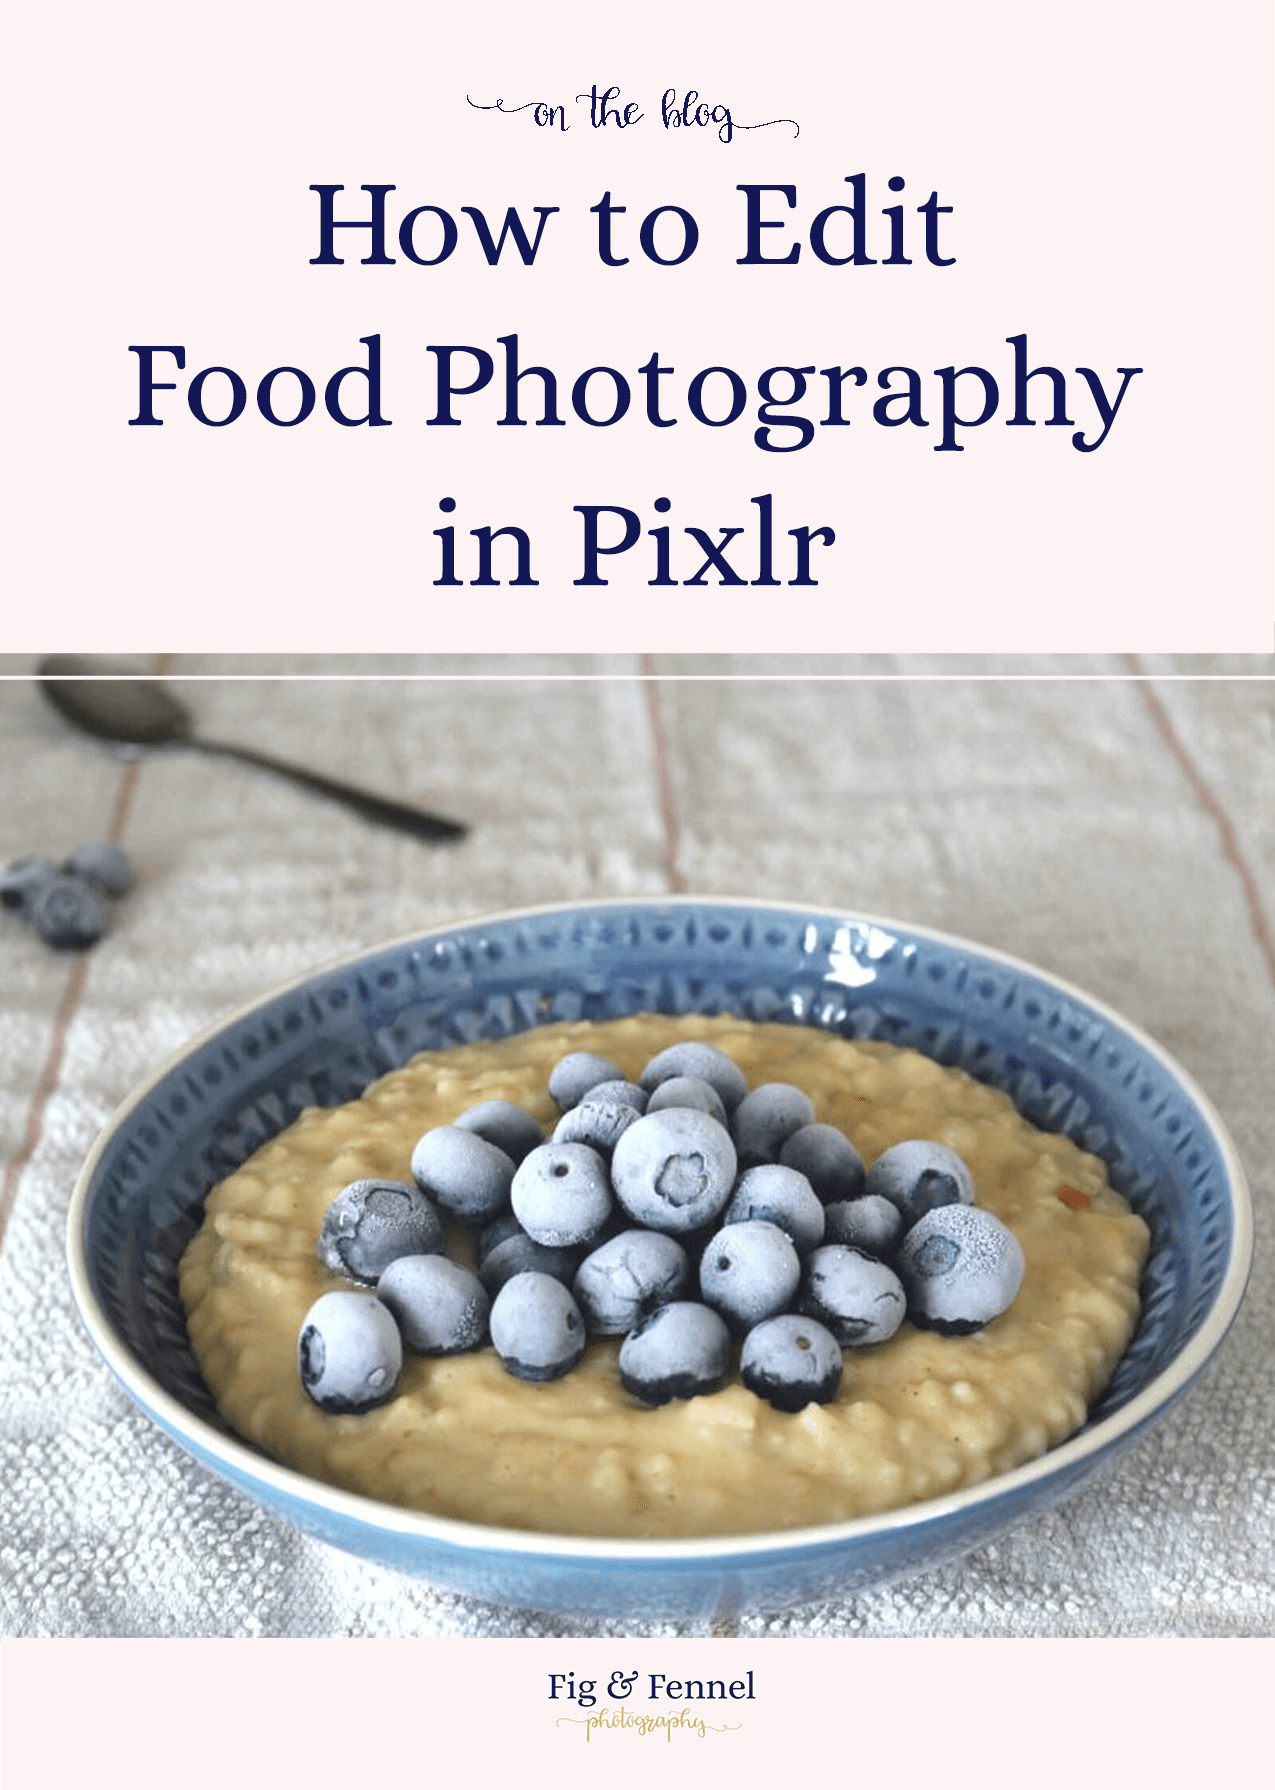 How to Edit Food Photography in Pixlr